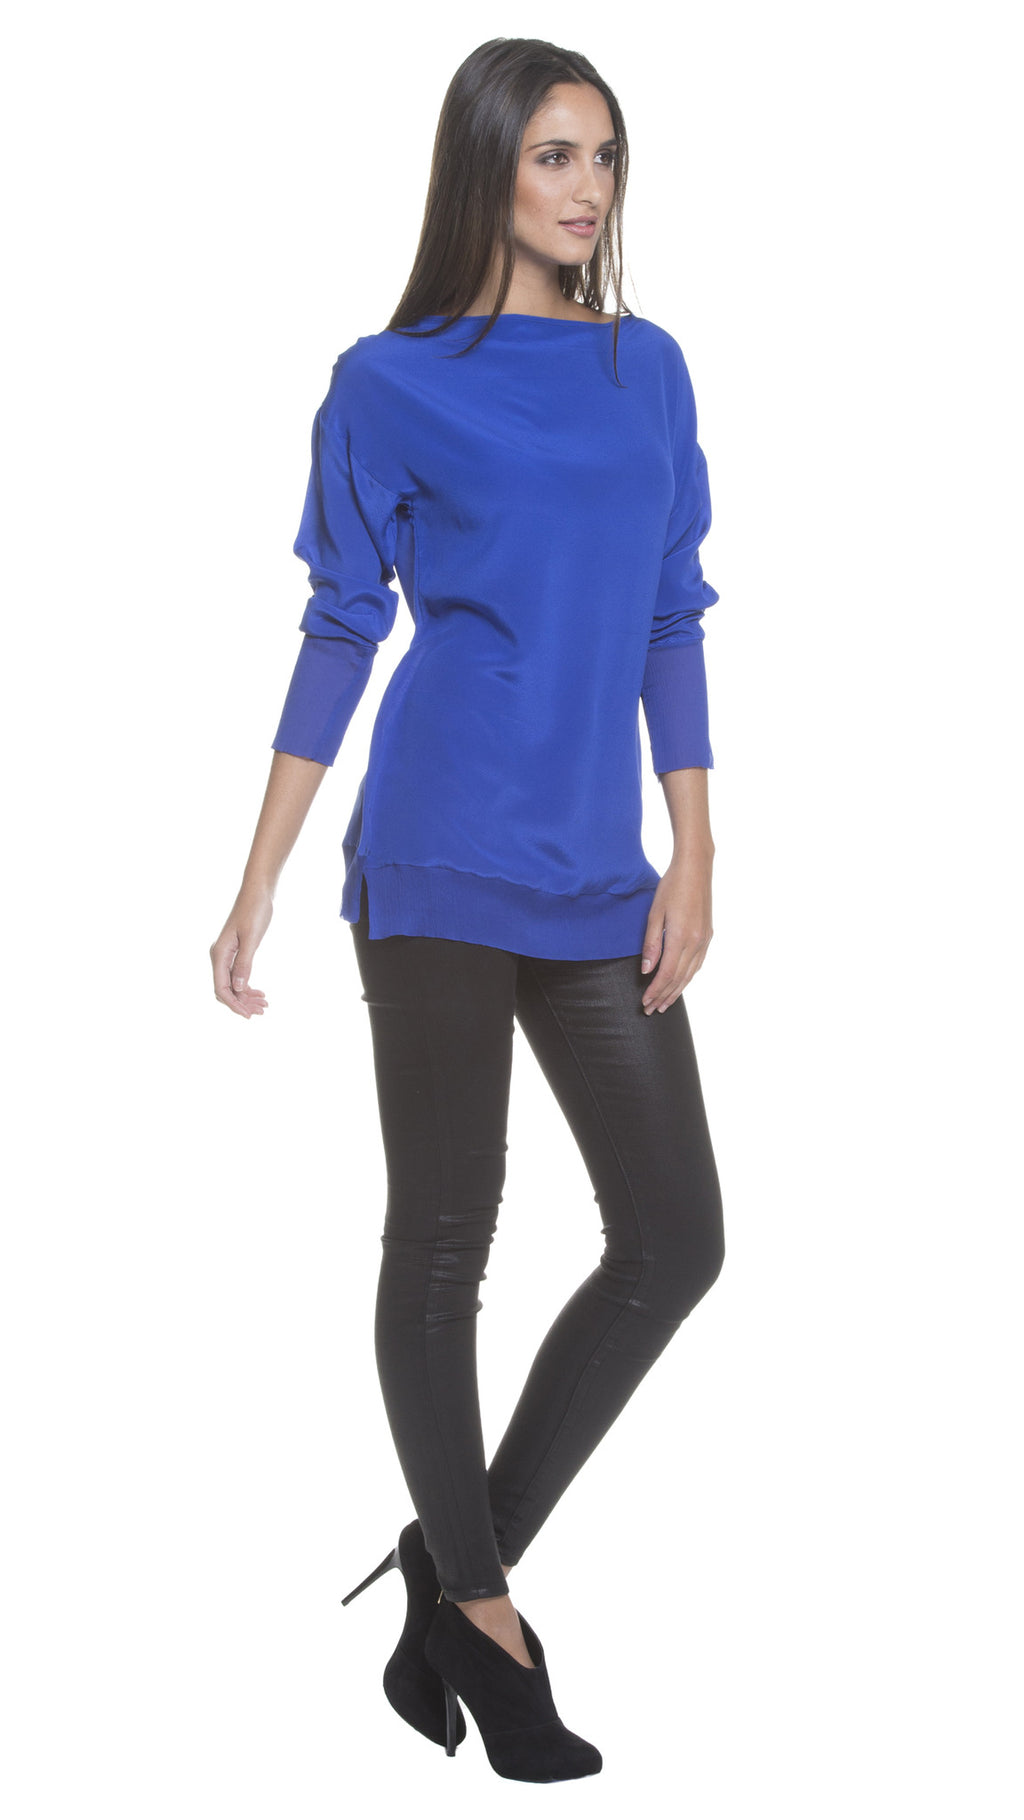 Z Karlie Georgette Panel Top